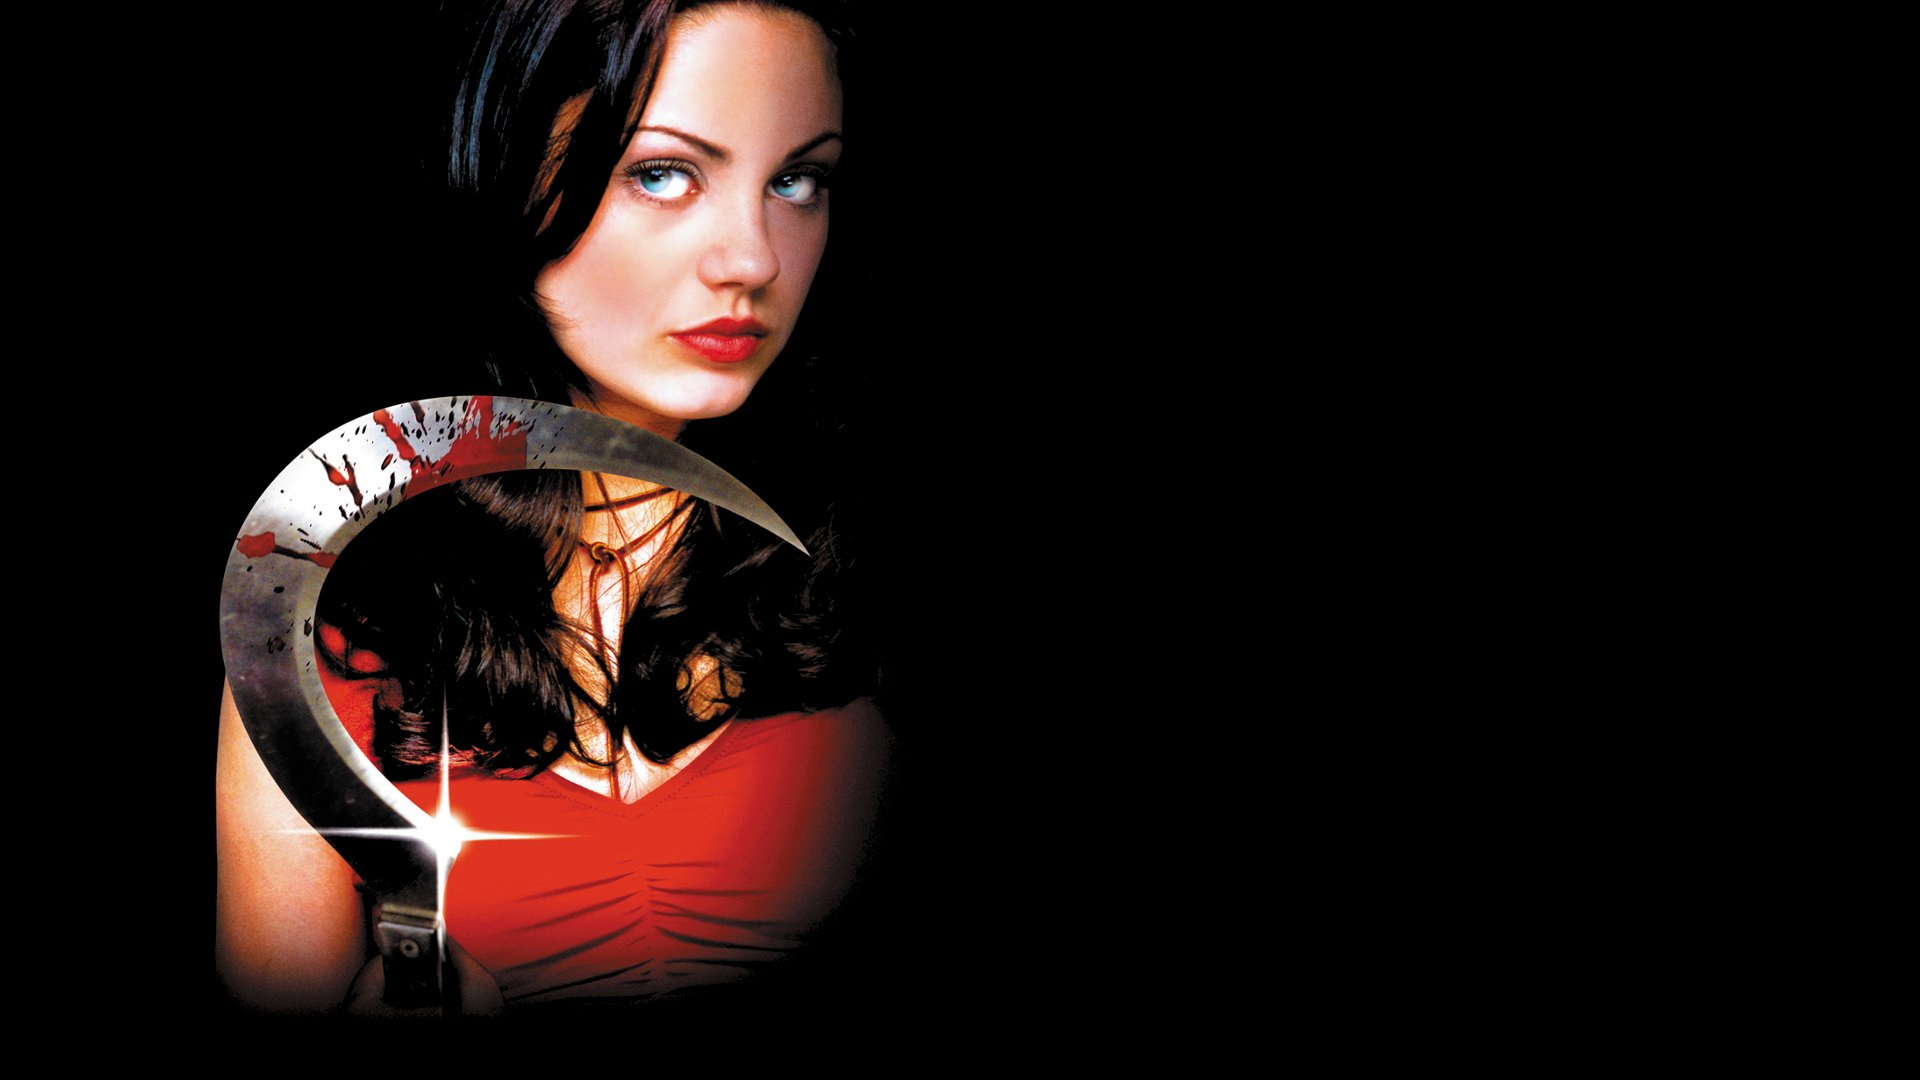 All American Girl Movie american psycho 2: all american girl hd wallpaper